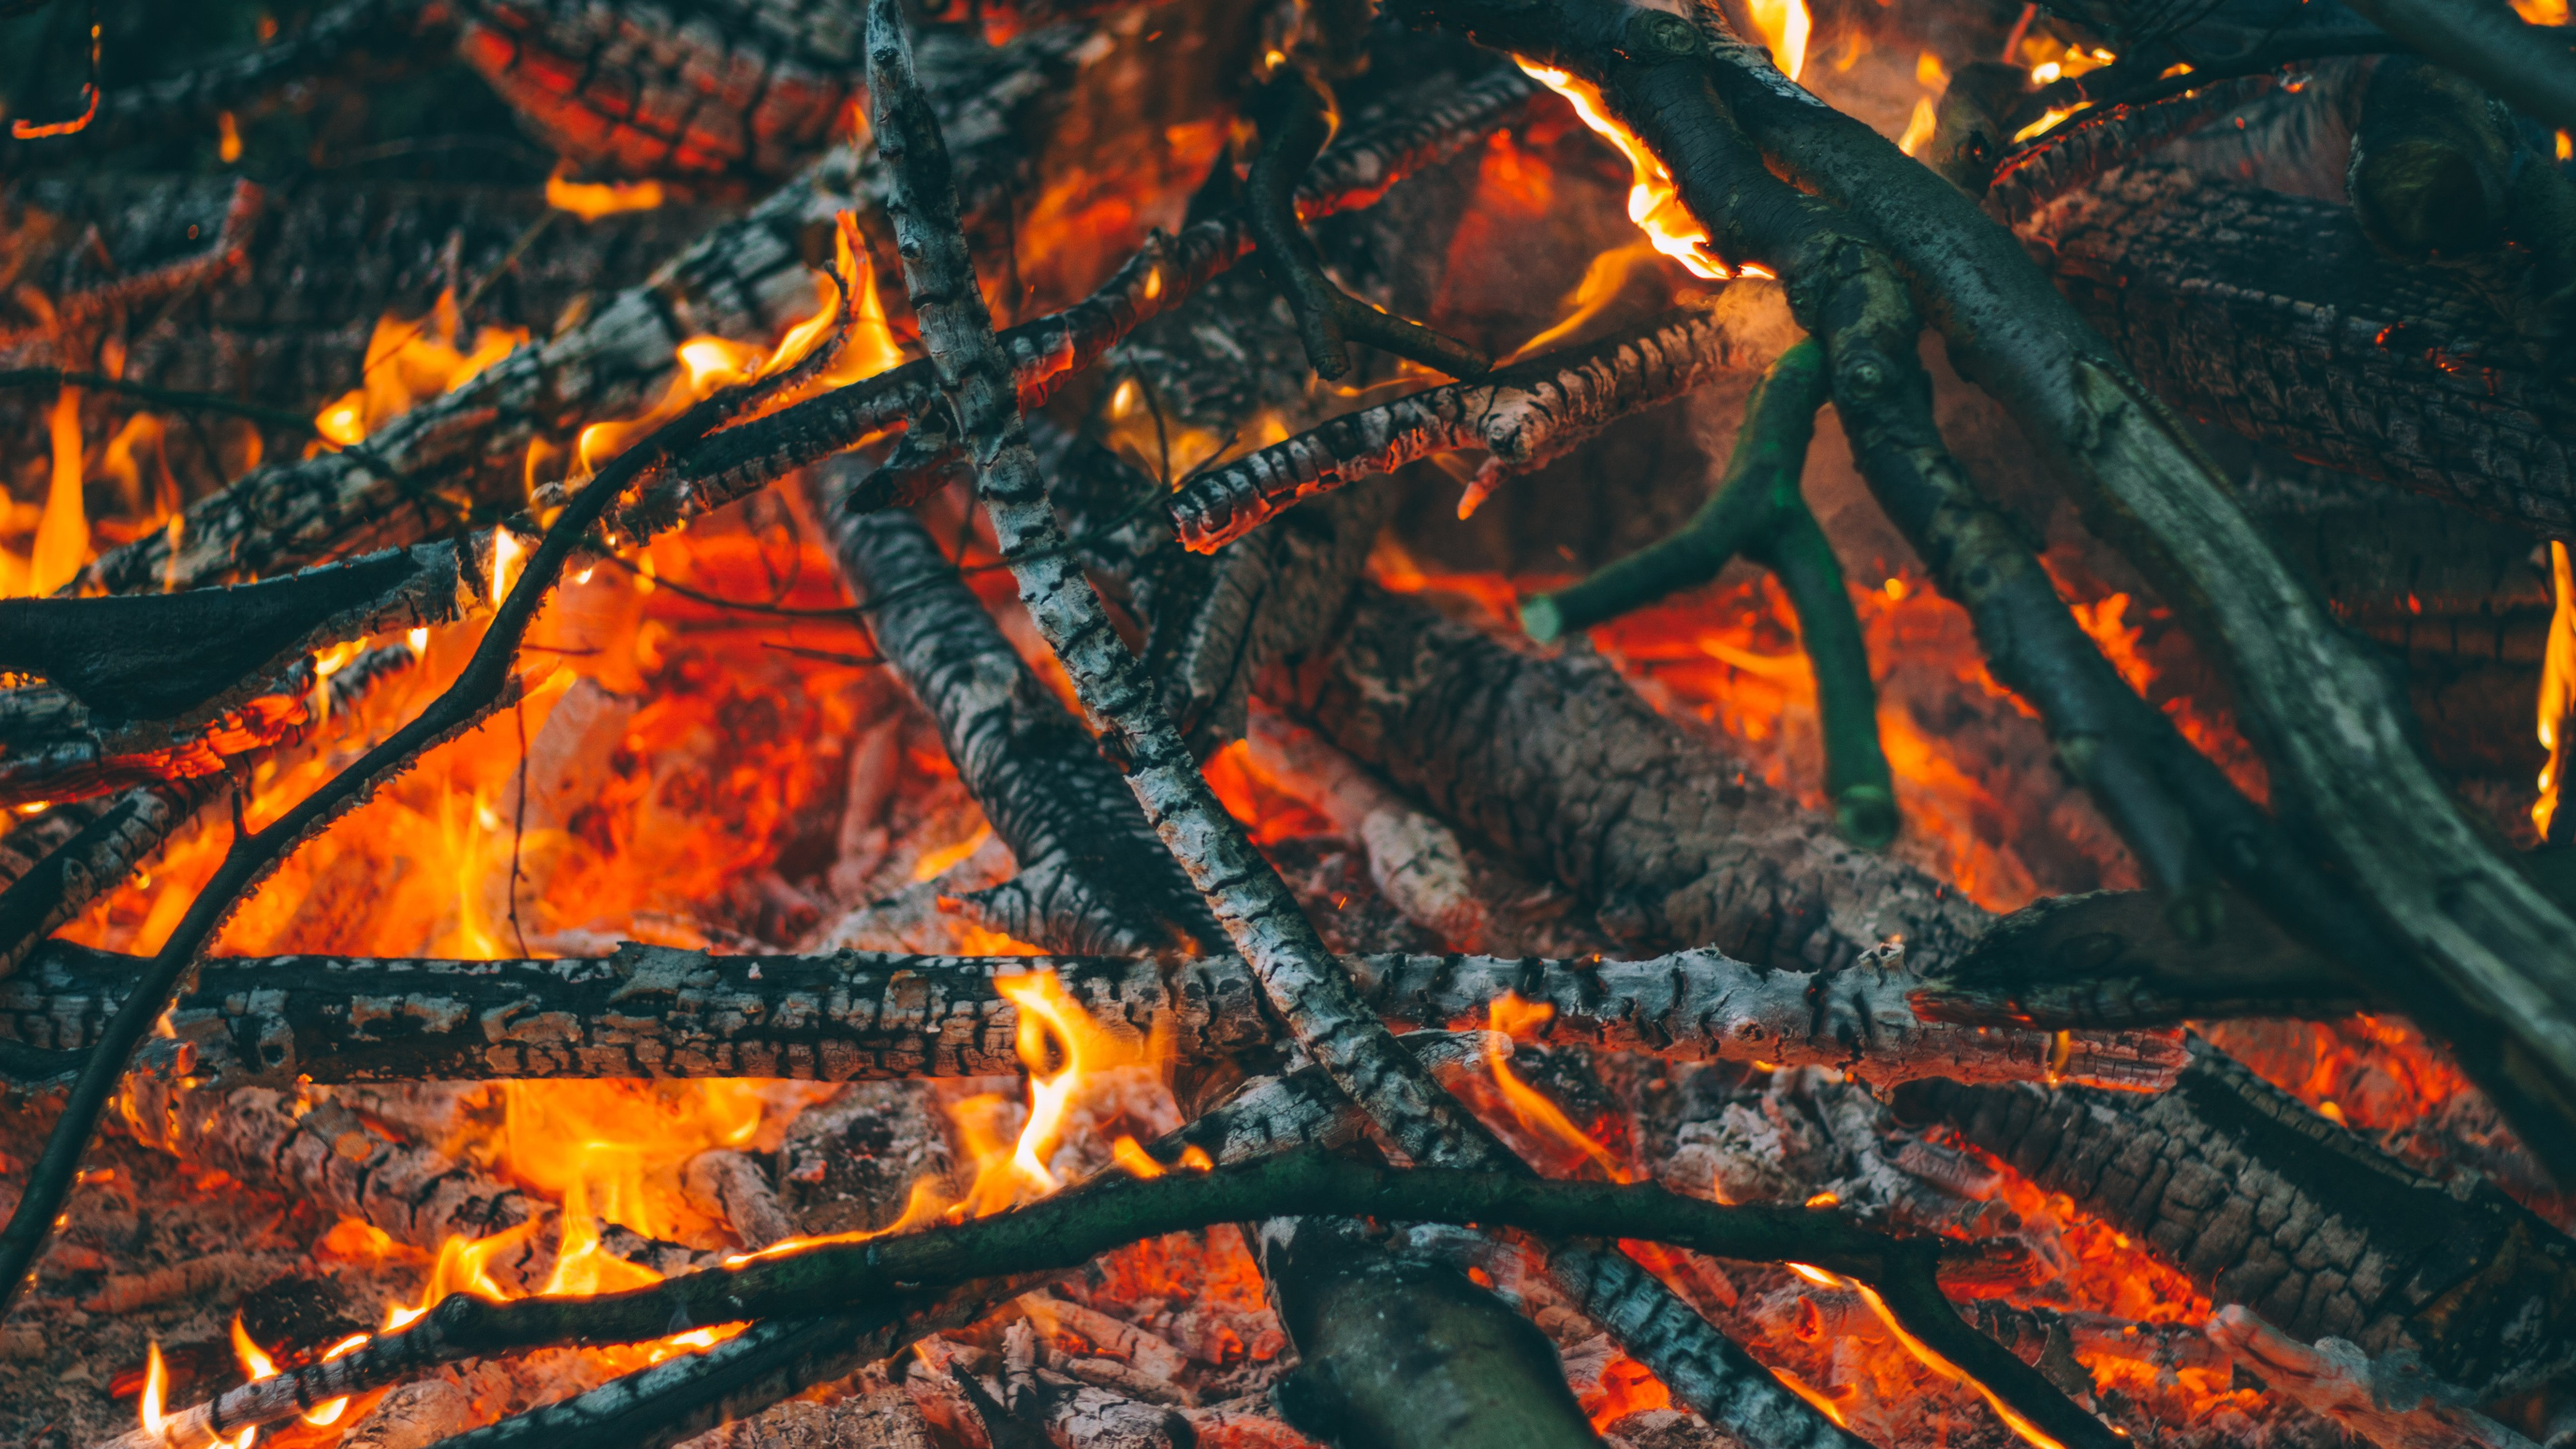 Wallpaper Firewood Carbon Fire 3840x2160 Uhd 4k Picture Image